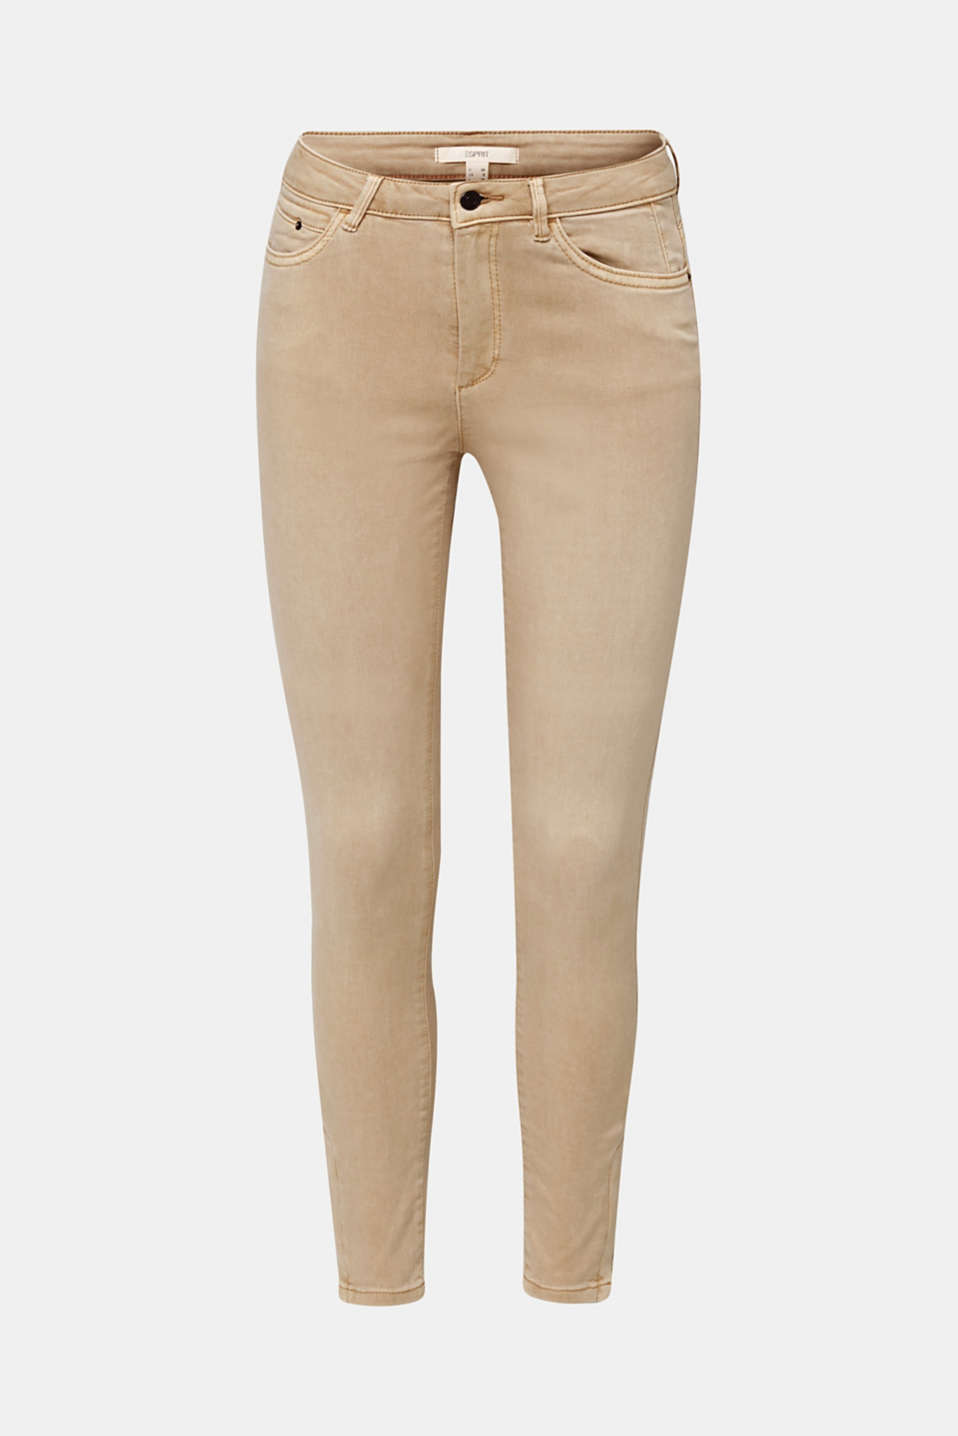 Ankle-length stretch trousers with hem zips, BEIGE, detail image number 7